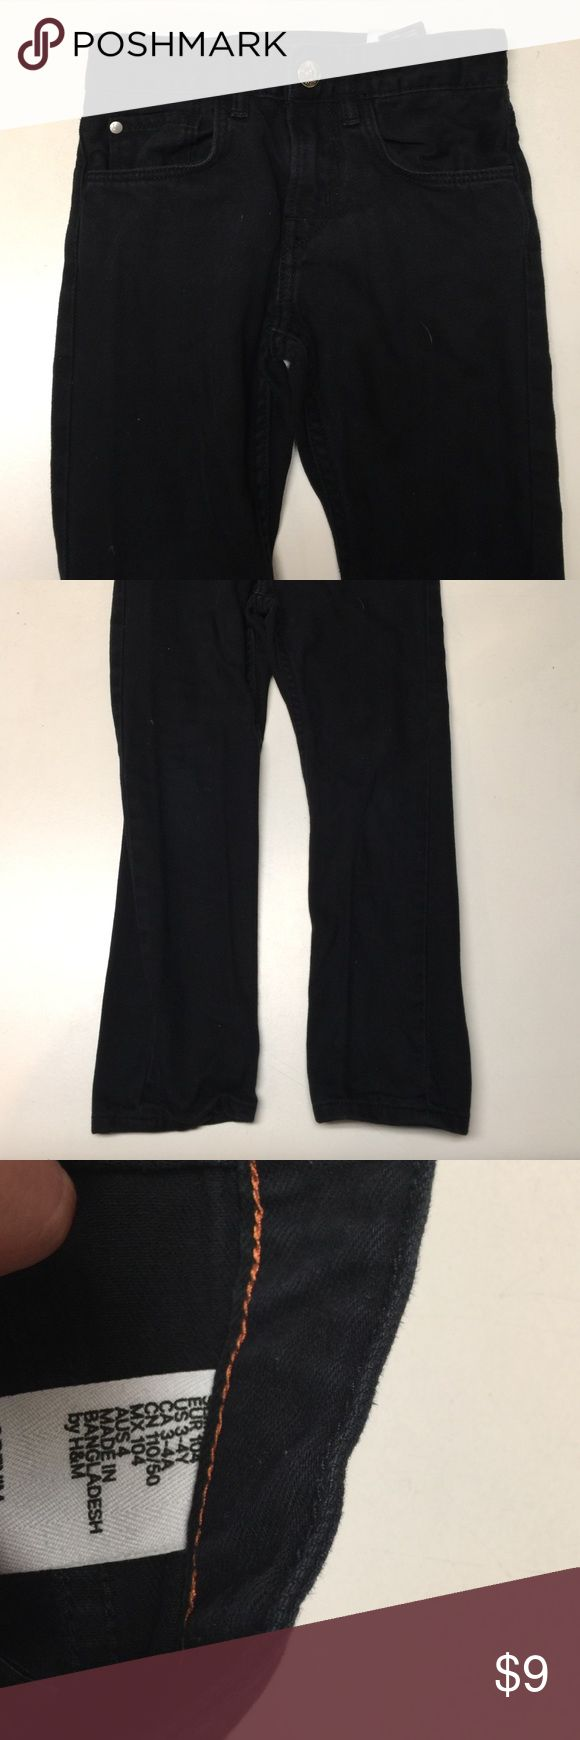 H&M boy black jeans H&M black skinny boy jeans size 3-4 years H&M Bottoms Jeans